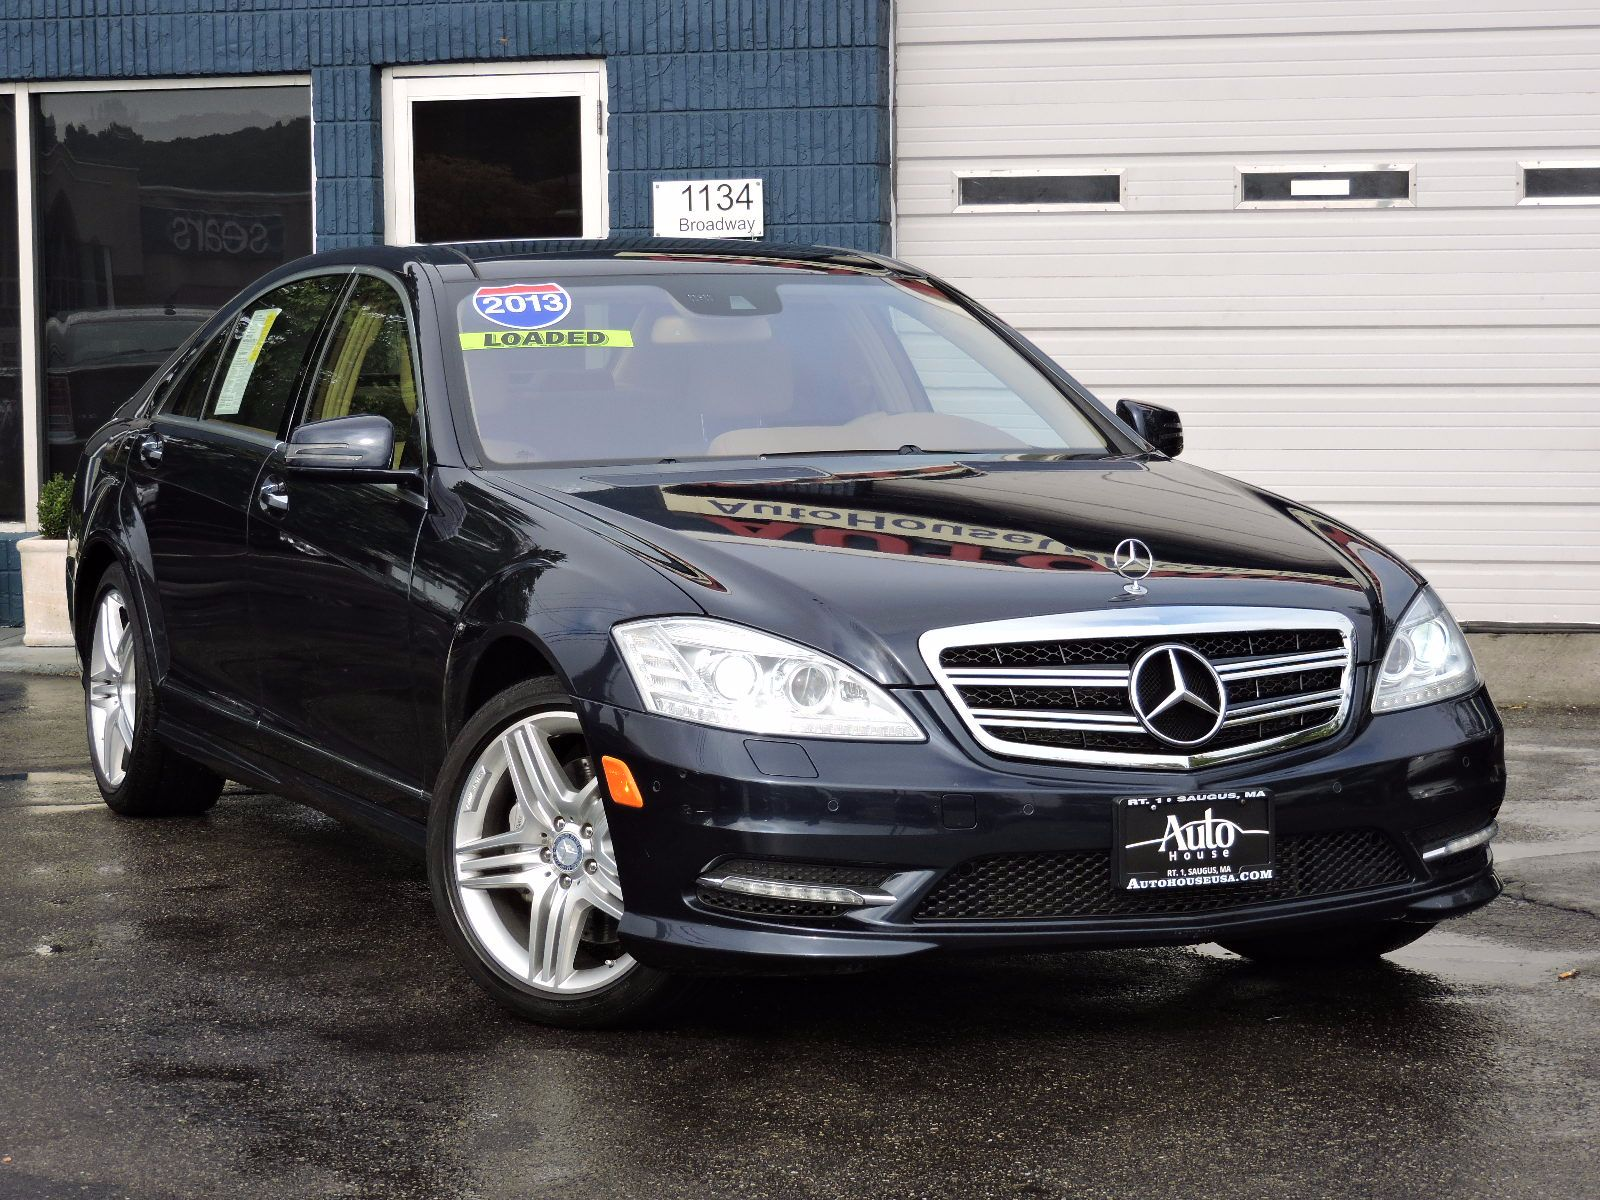 used 2013 mercedes benz s 550 at auto house usa saugus